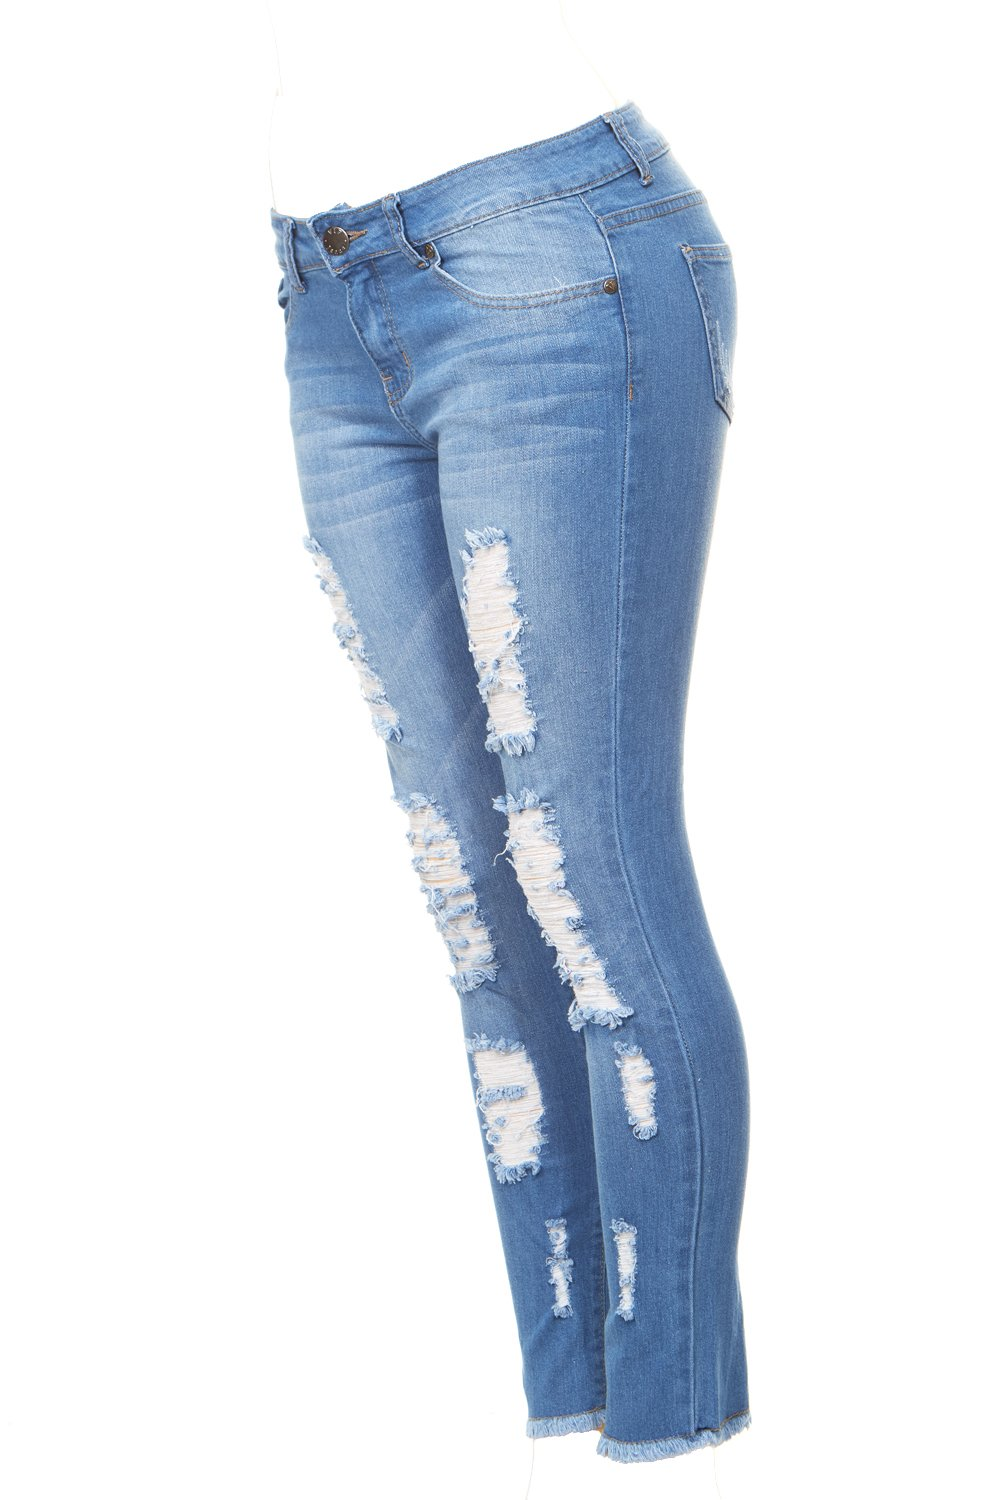 VIP Jeans Ripped Distressed Skinny jeans for women Junior Plus size 5 Colors | eBay